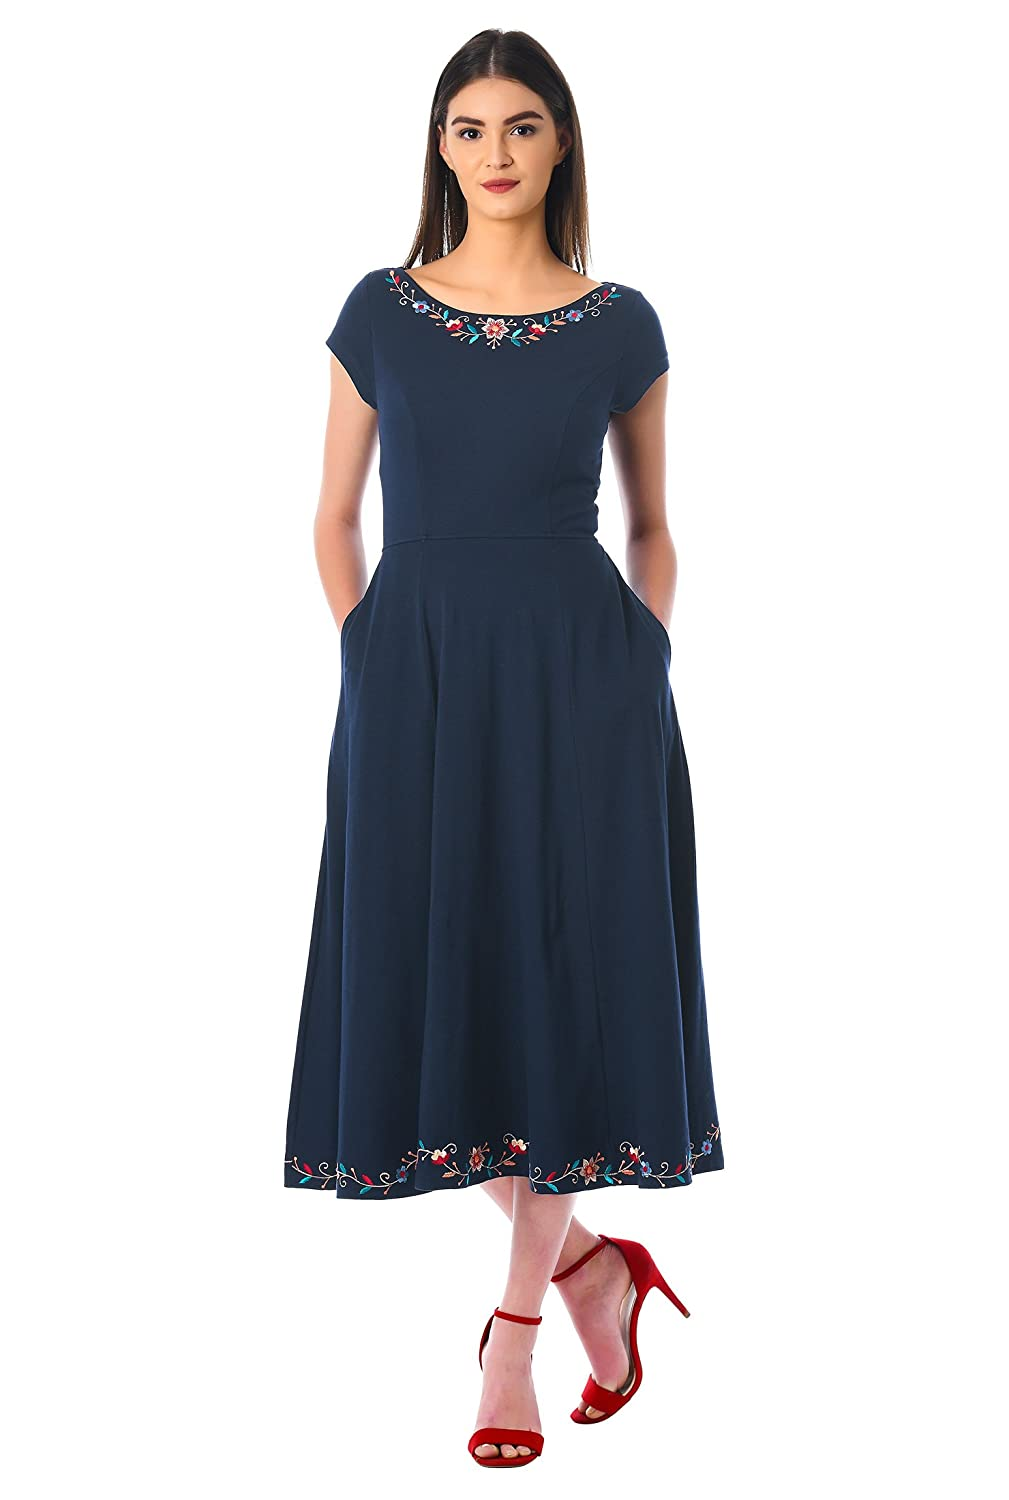 1940s Style Dresses | 40s Dress, Swing Dress eShakti Womens Floral Embroidery Trim Cotton Knit Dress $69.95 AT vintagedancer.com